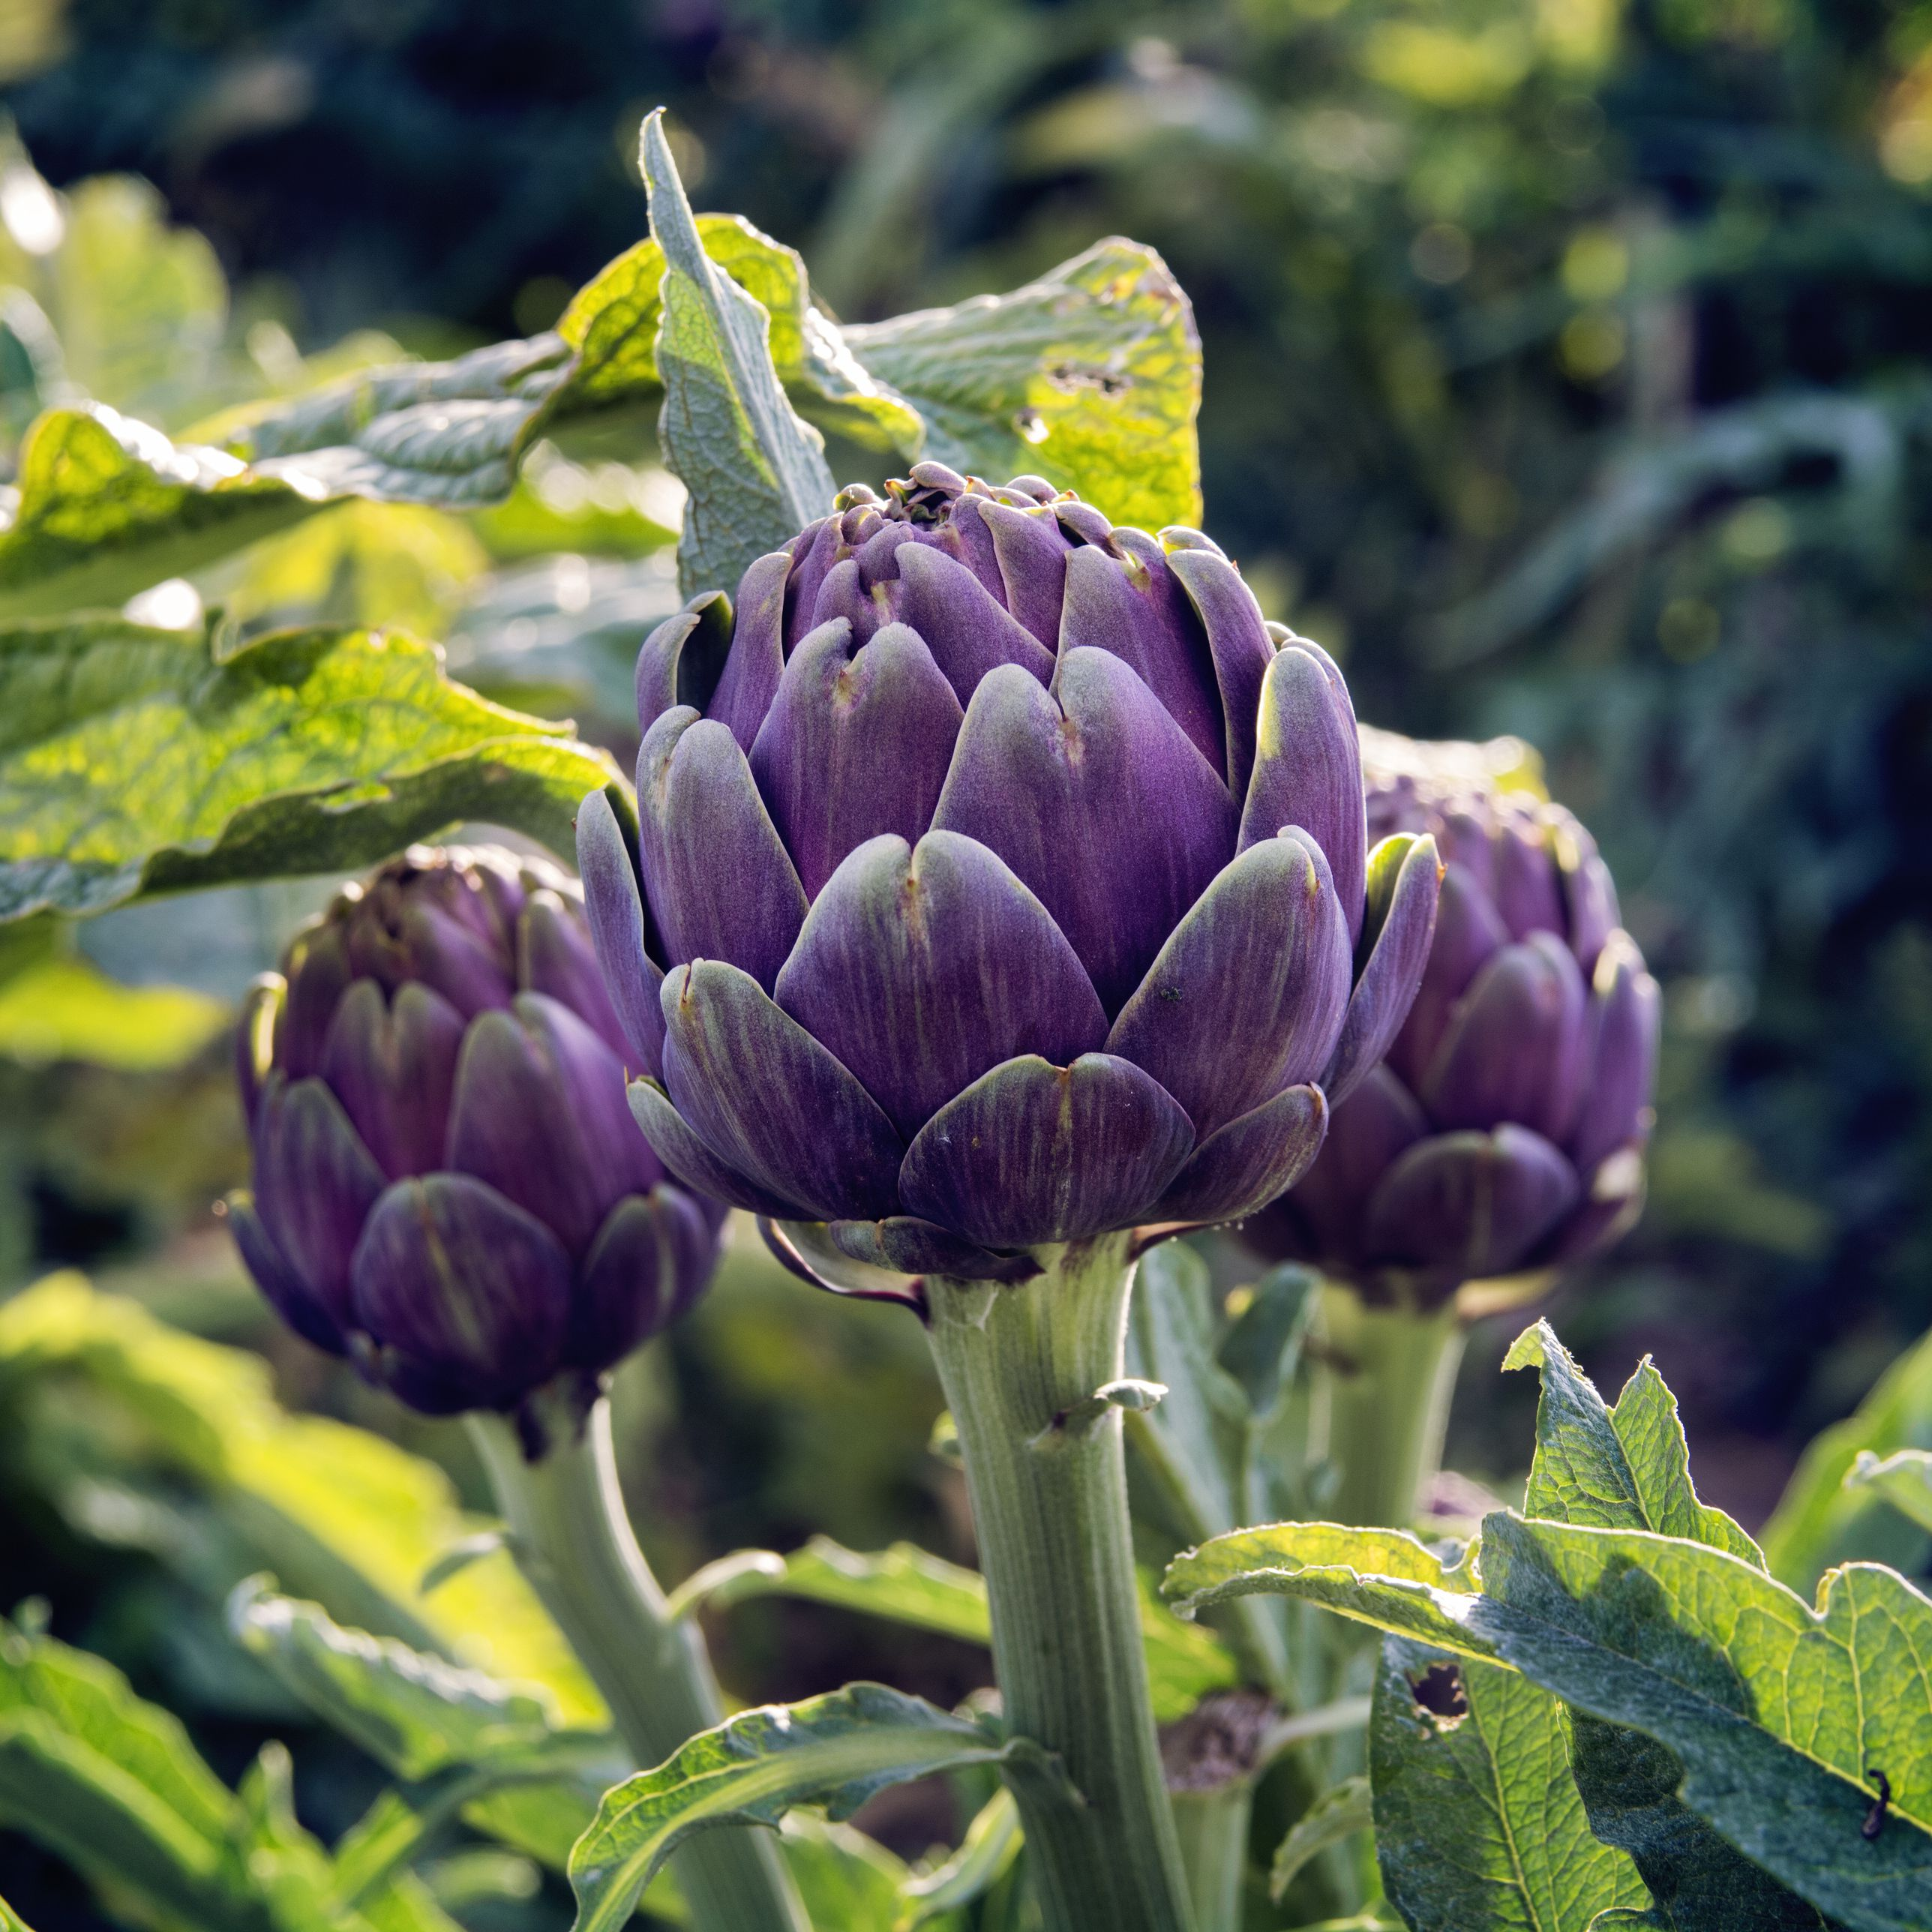 How to Grow and Care for Artichoke Plants